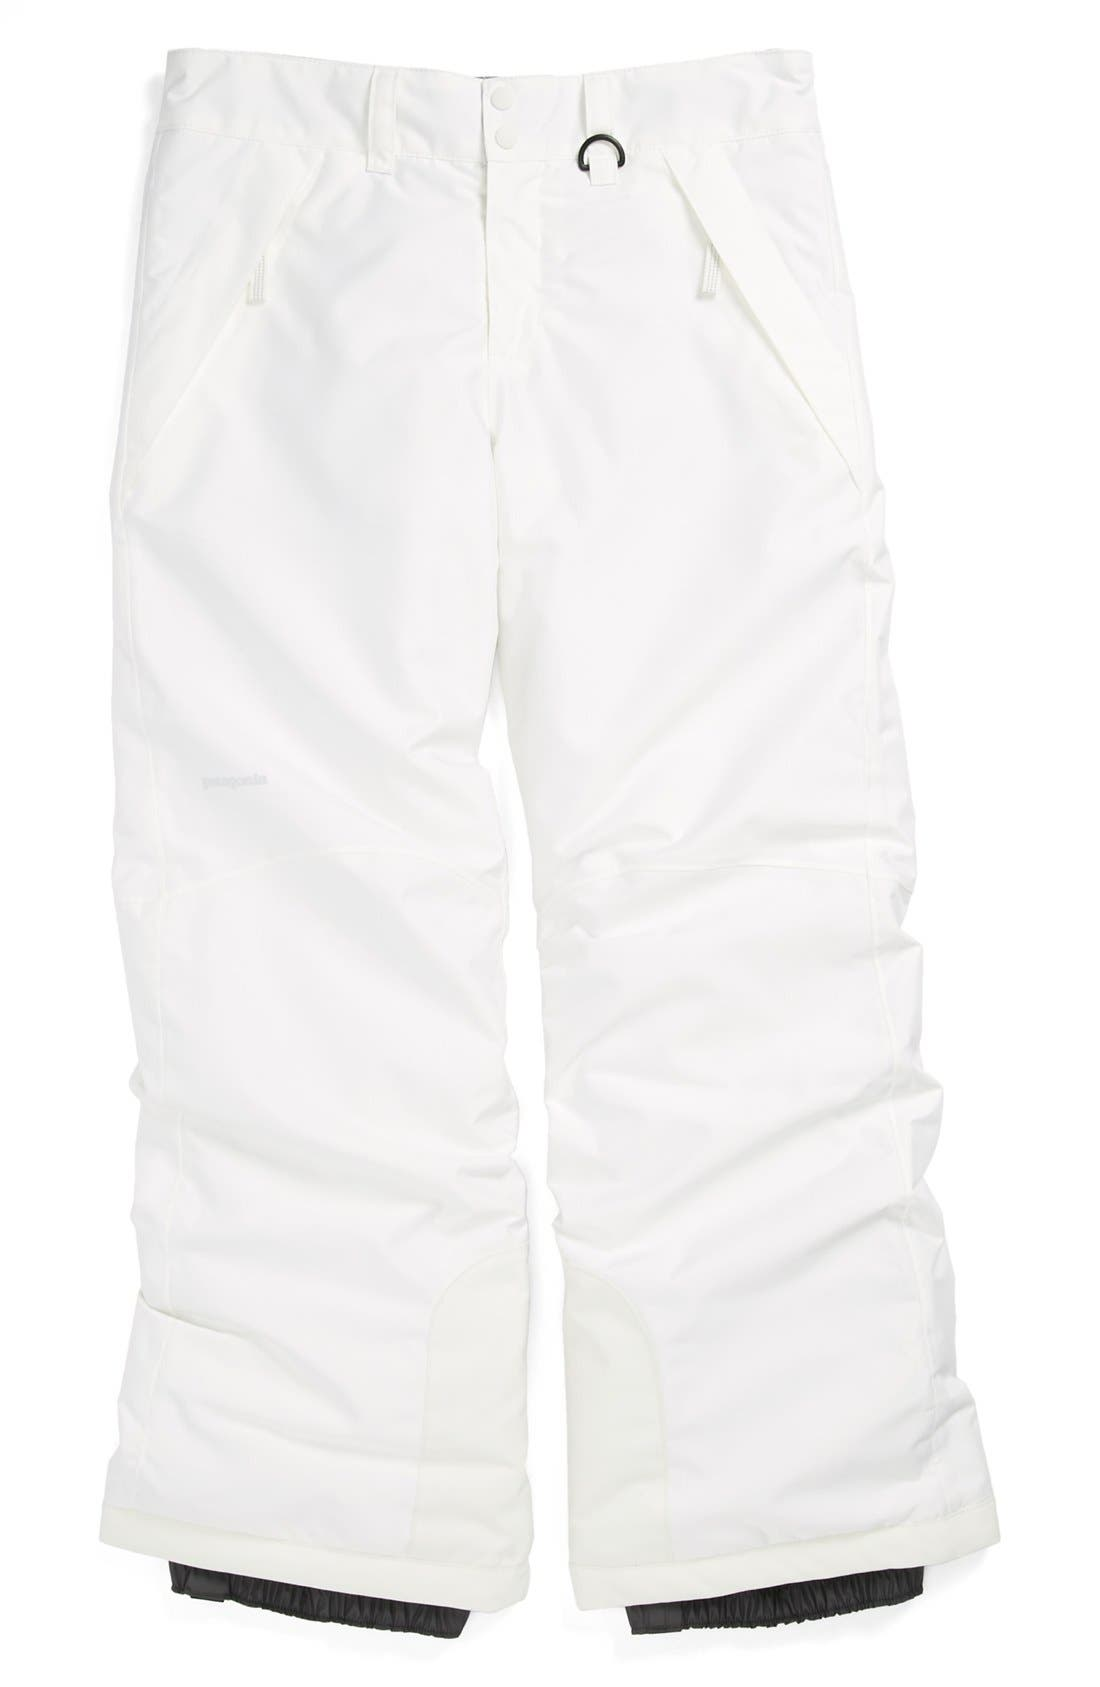 Main Image - Patagonia 'Snowbelle' Insulated Pants (Little Girls & Big Girls)